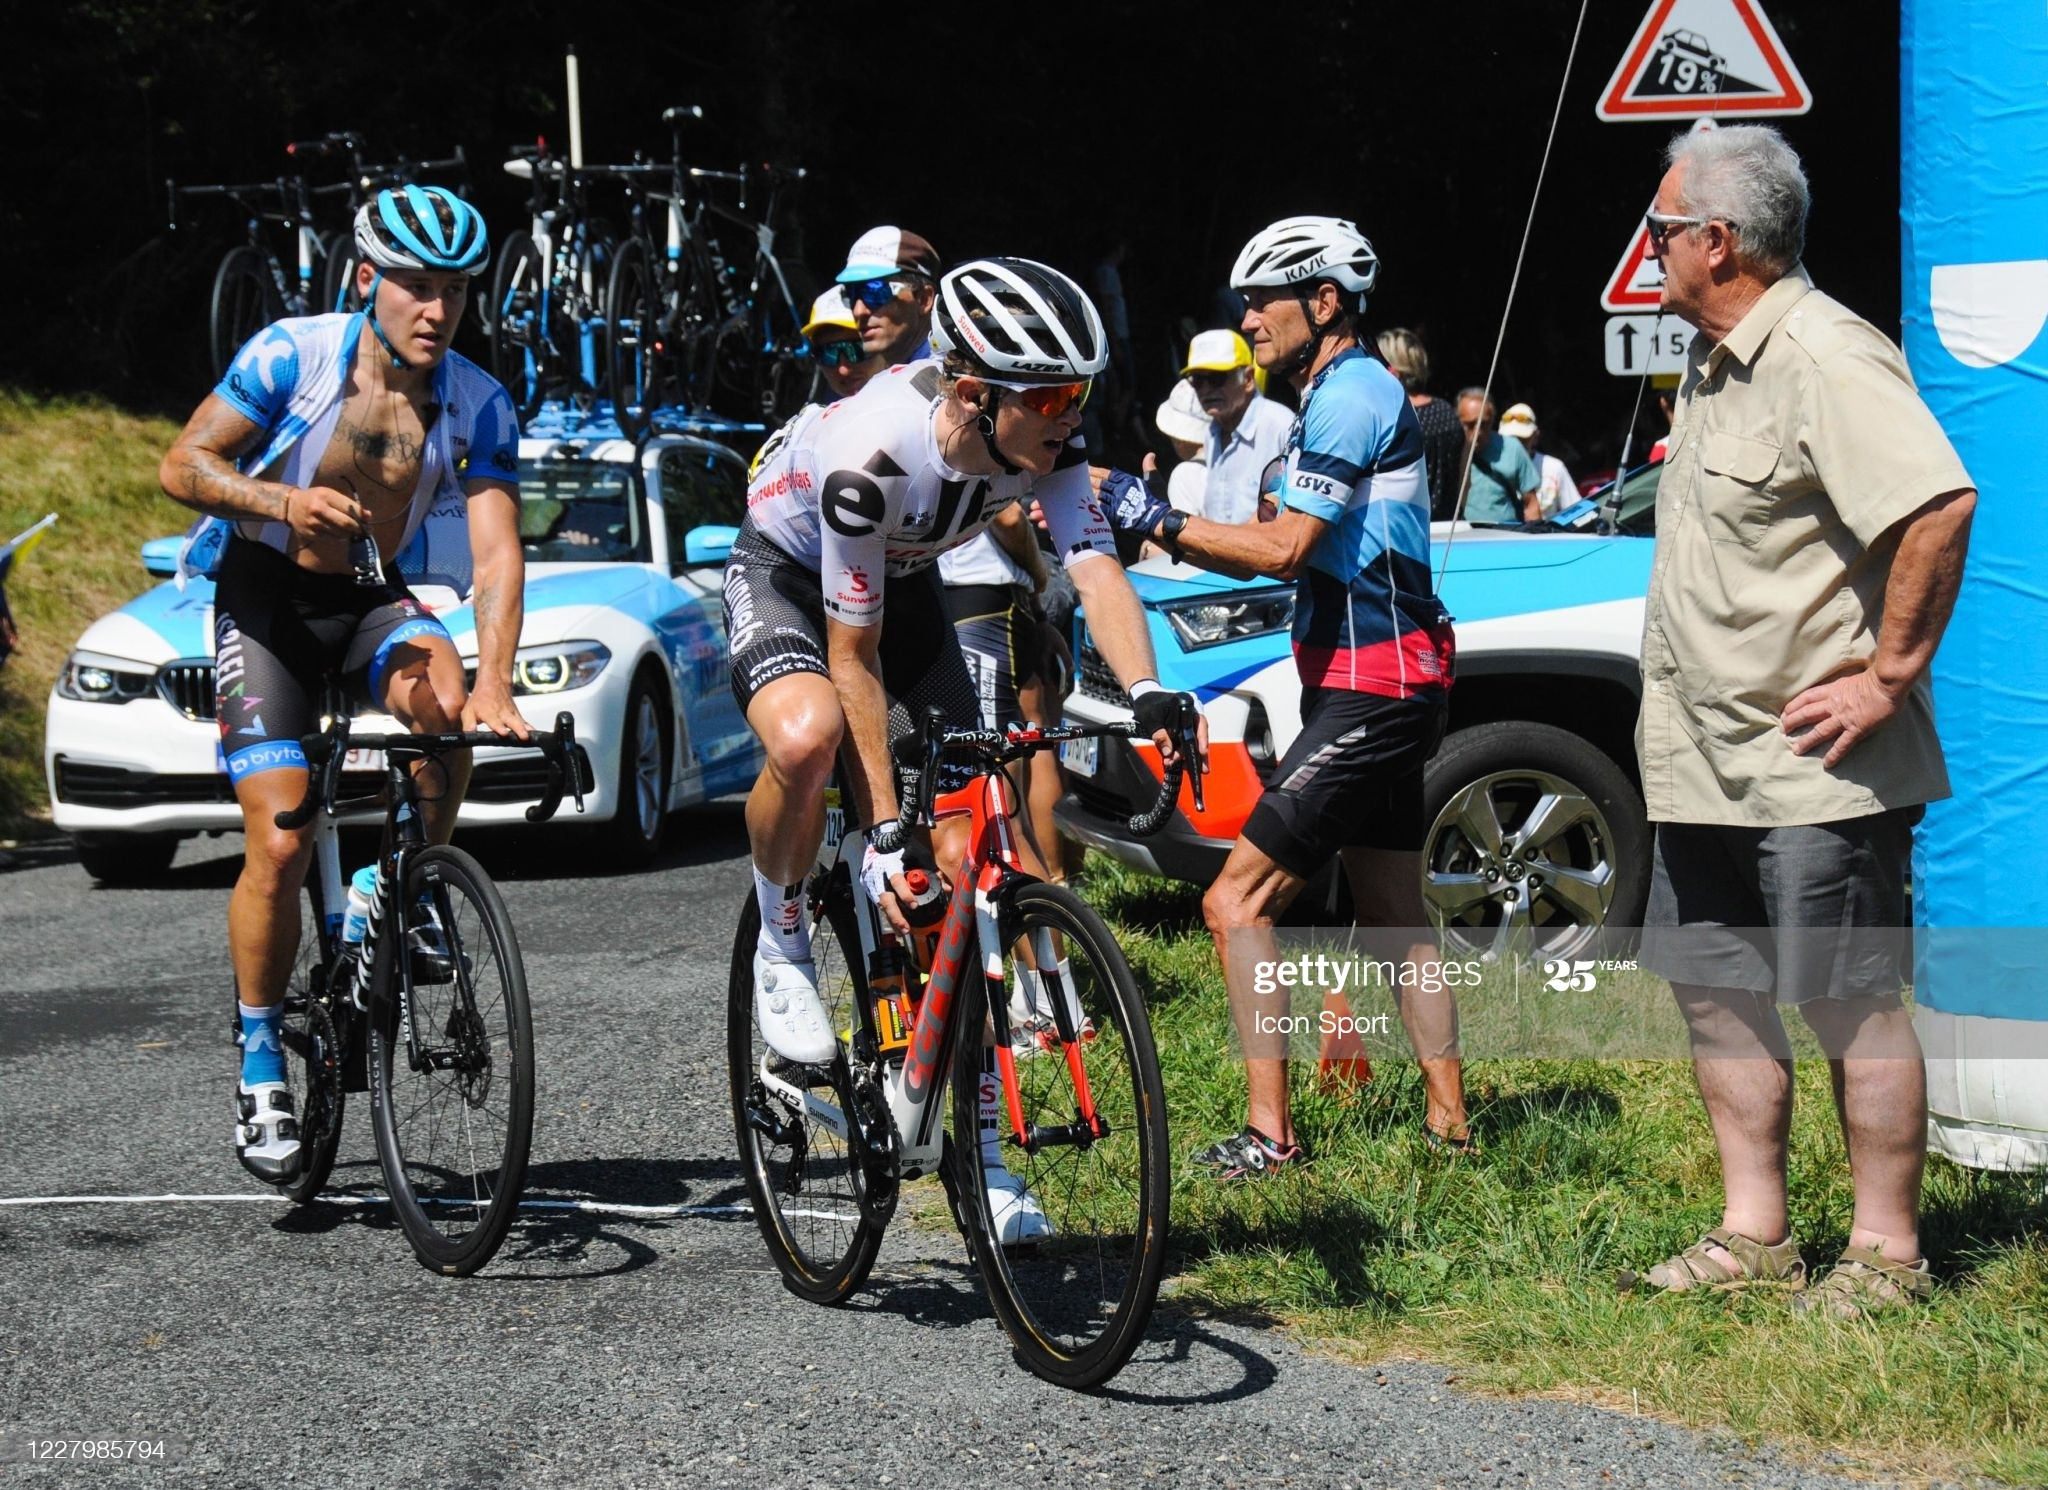 Martin Salmon of Team Sunweb at montee de la Selle de Fromentel. during the Tour de l'Ain - stage 3 from Saint Vulbas to Grand Colombier on August 9, 2020 in UNSPECIFIED, Unspecified. (Photo by Jean Michel Bancet/Icon Sport via Getty Images)